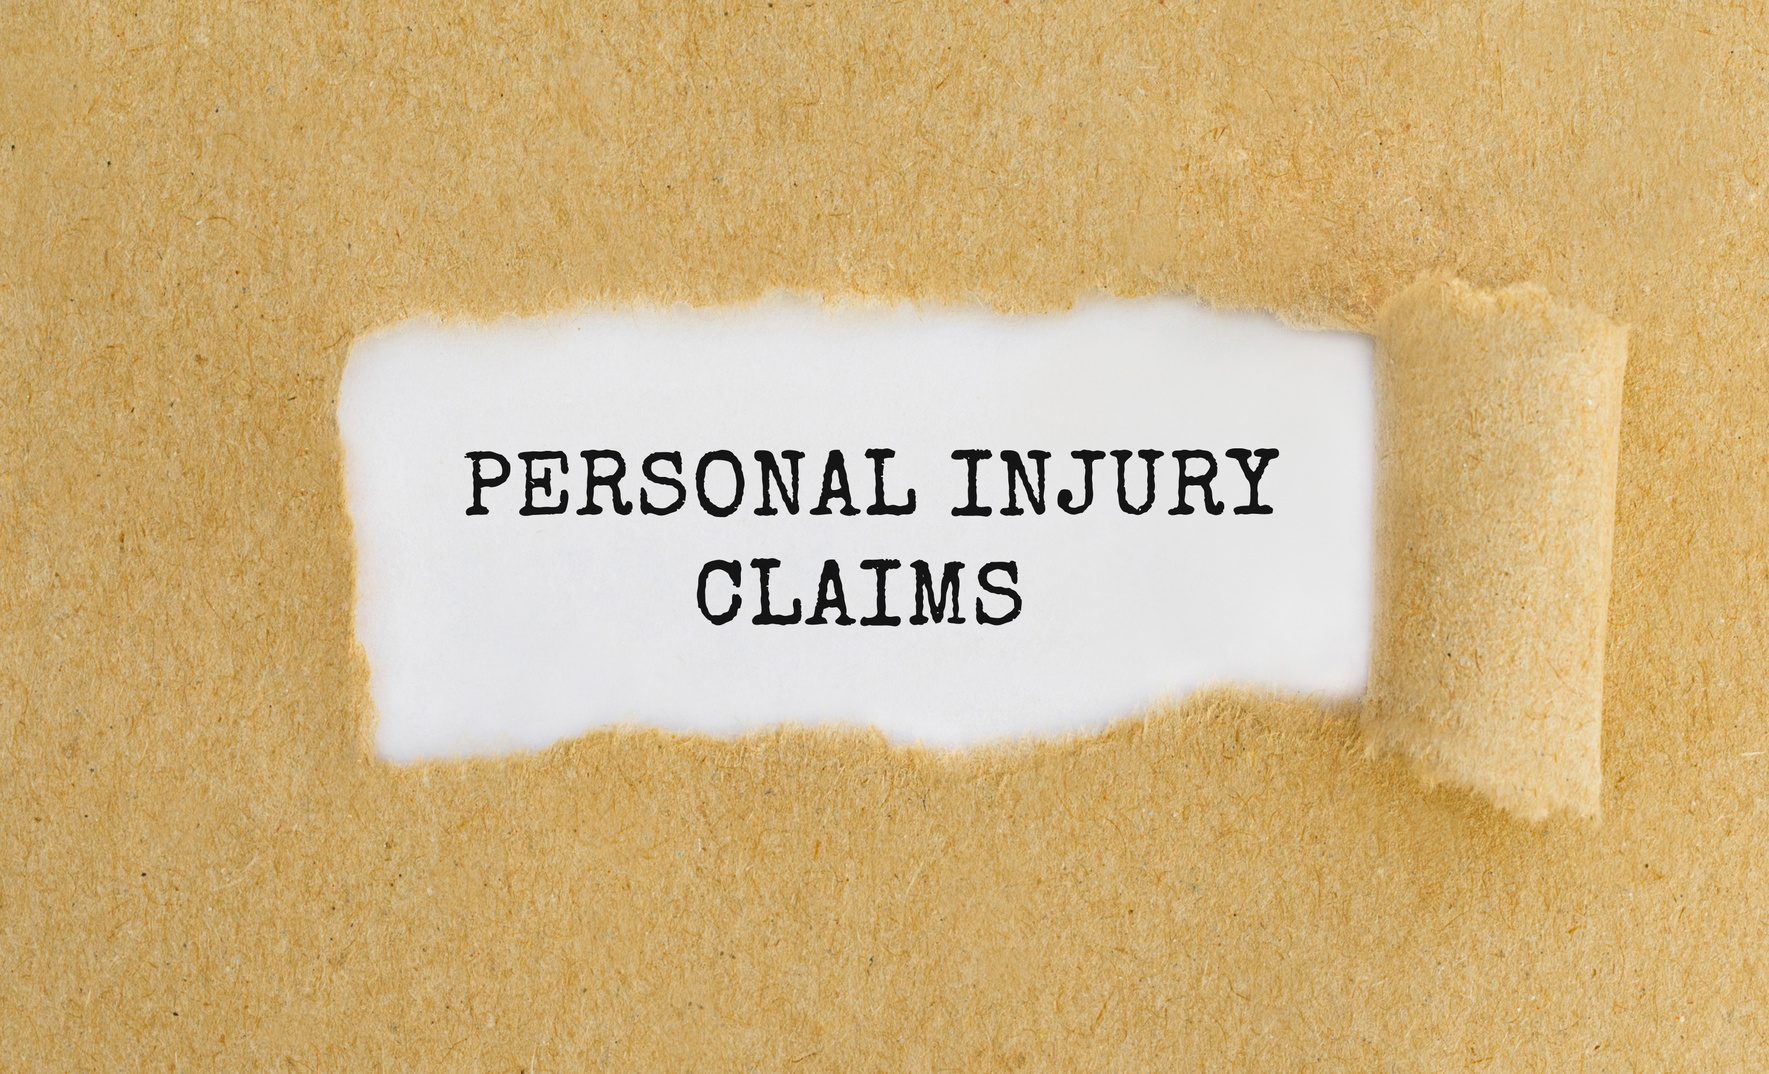 Personal Injury Claims in typed letters and if you need a personal injury attorney in Flint look here.